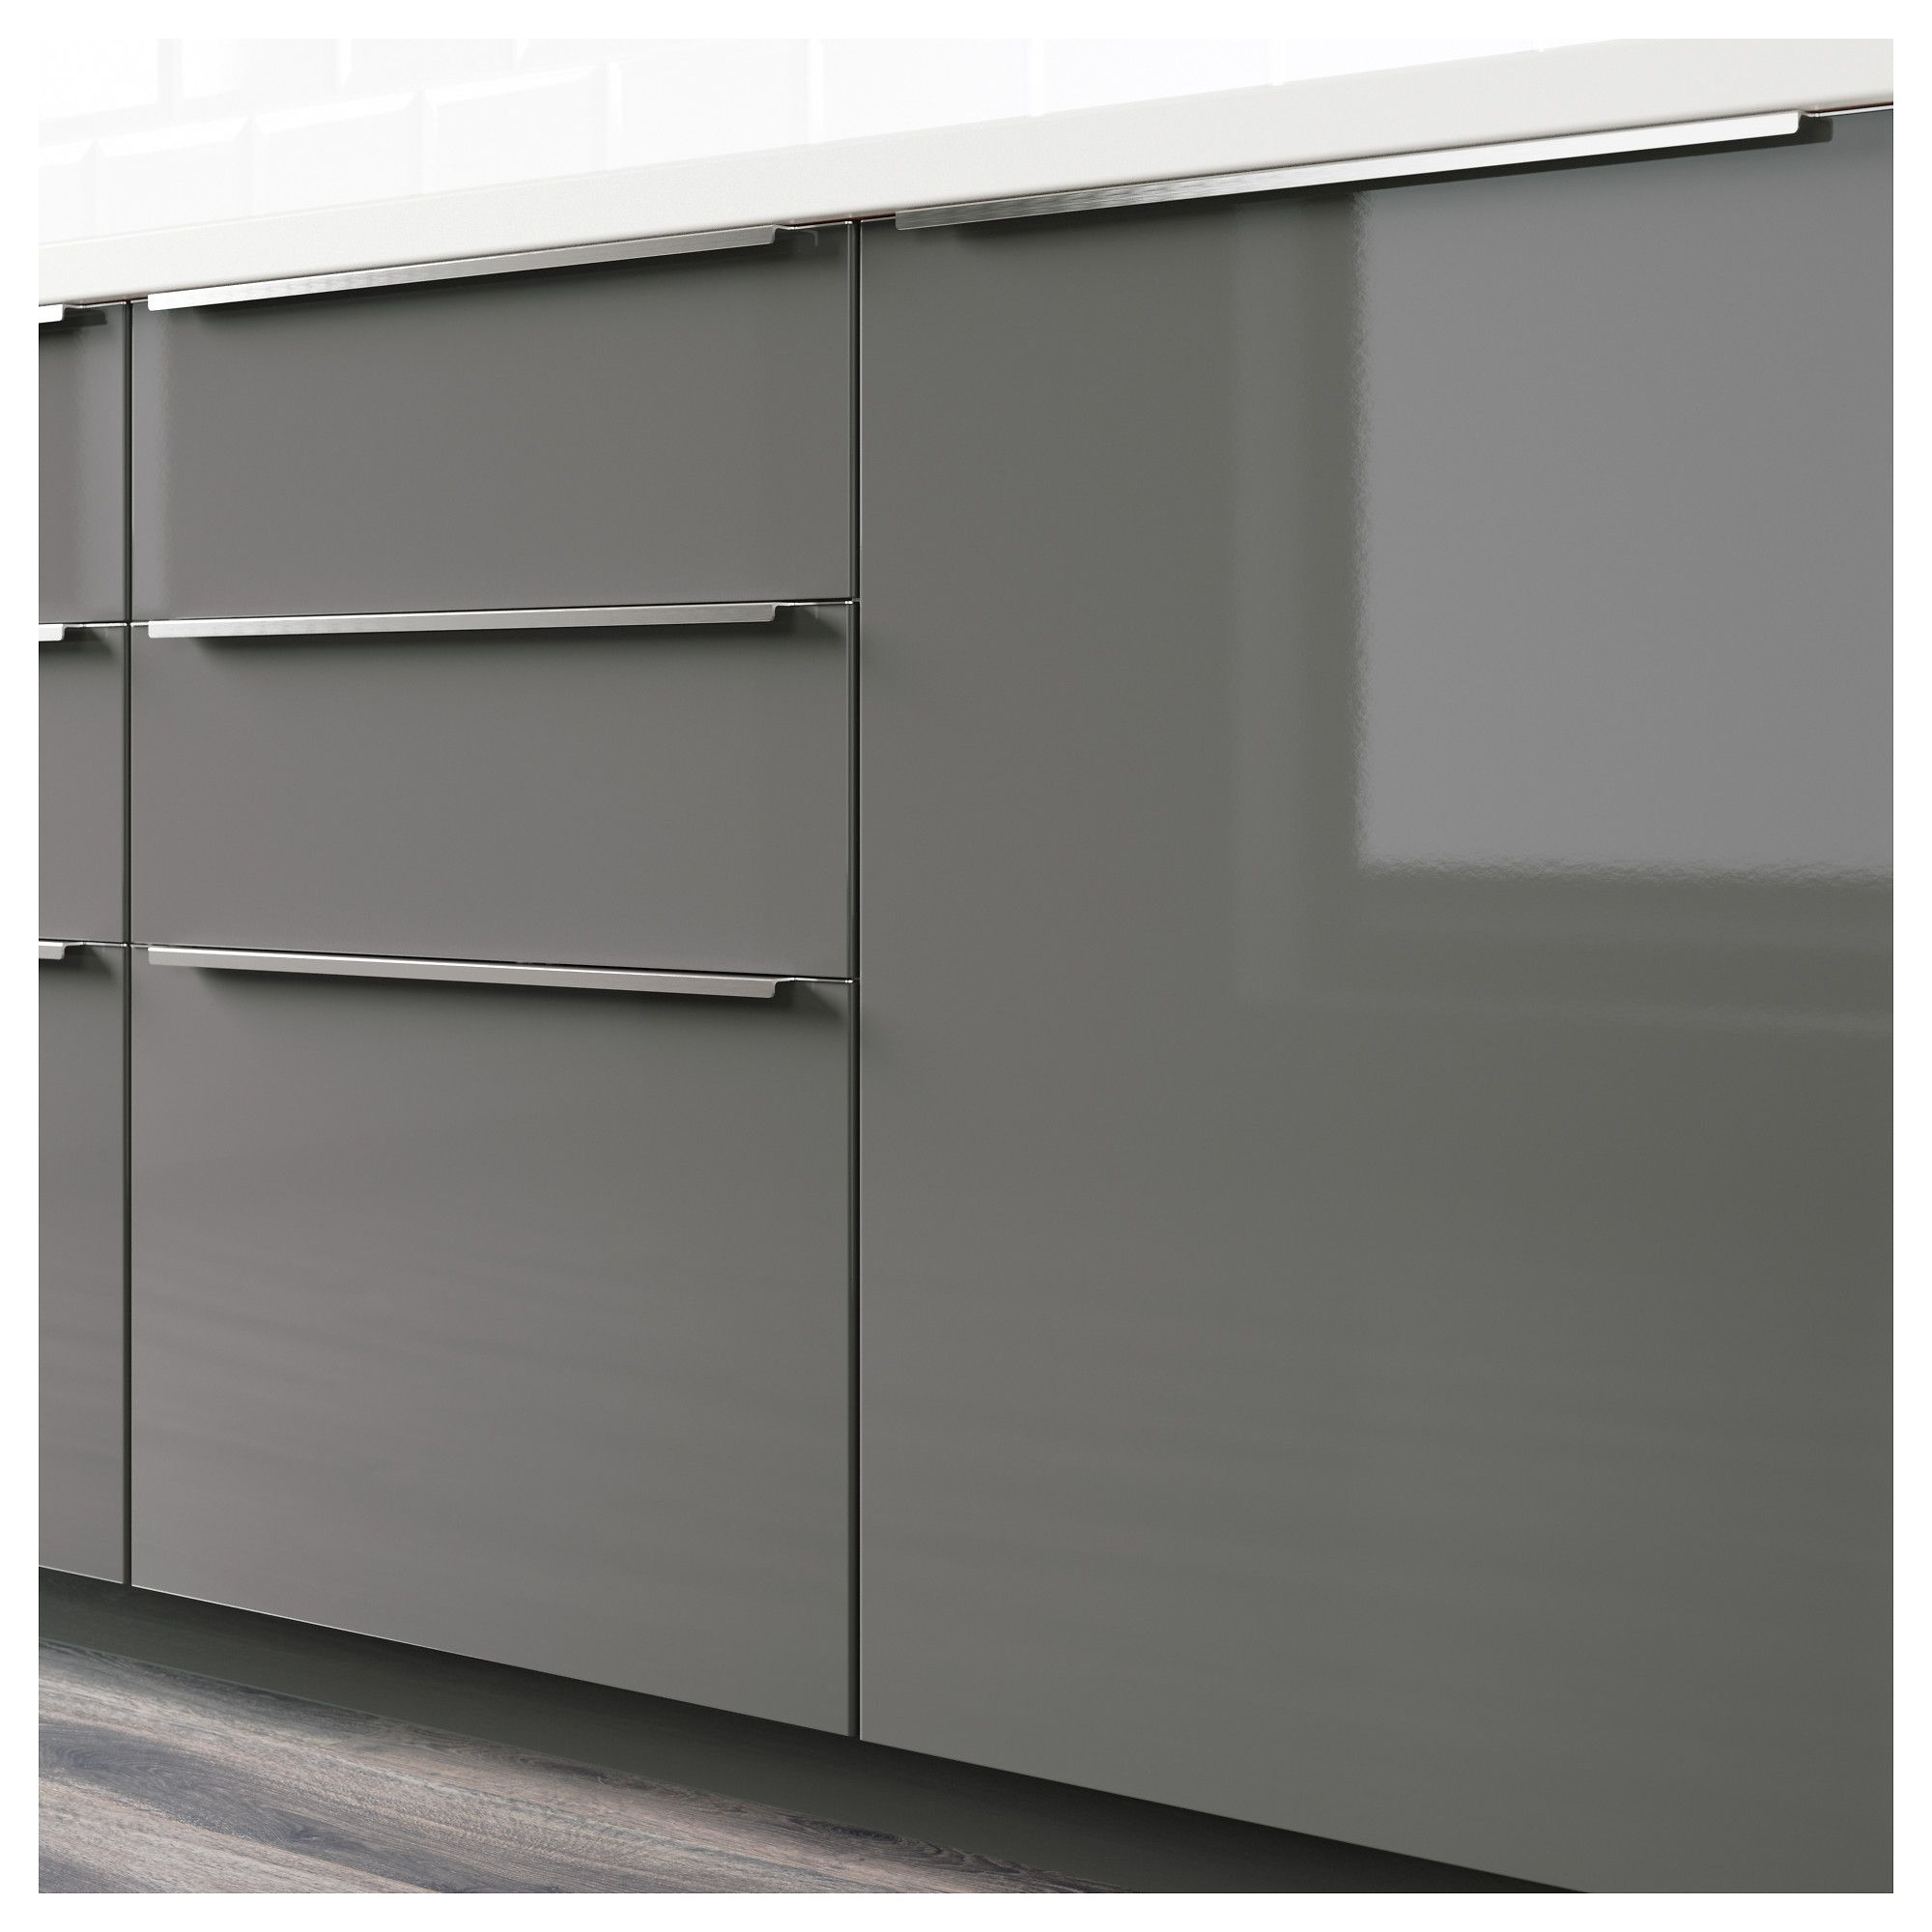 ikea ringhult door 25 year guarantee read about the terms. Black Bedroom Furniture Sets. Home Design Ideas